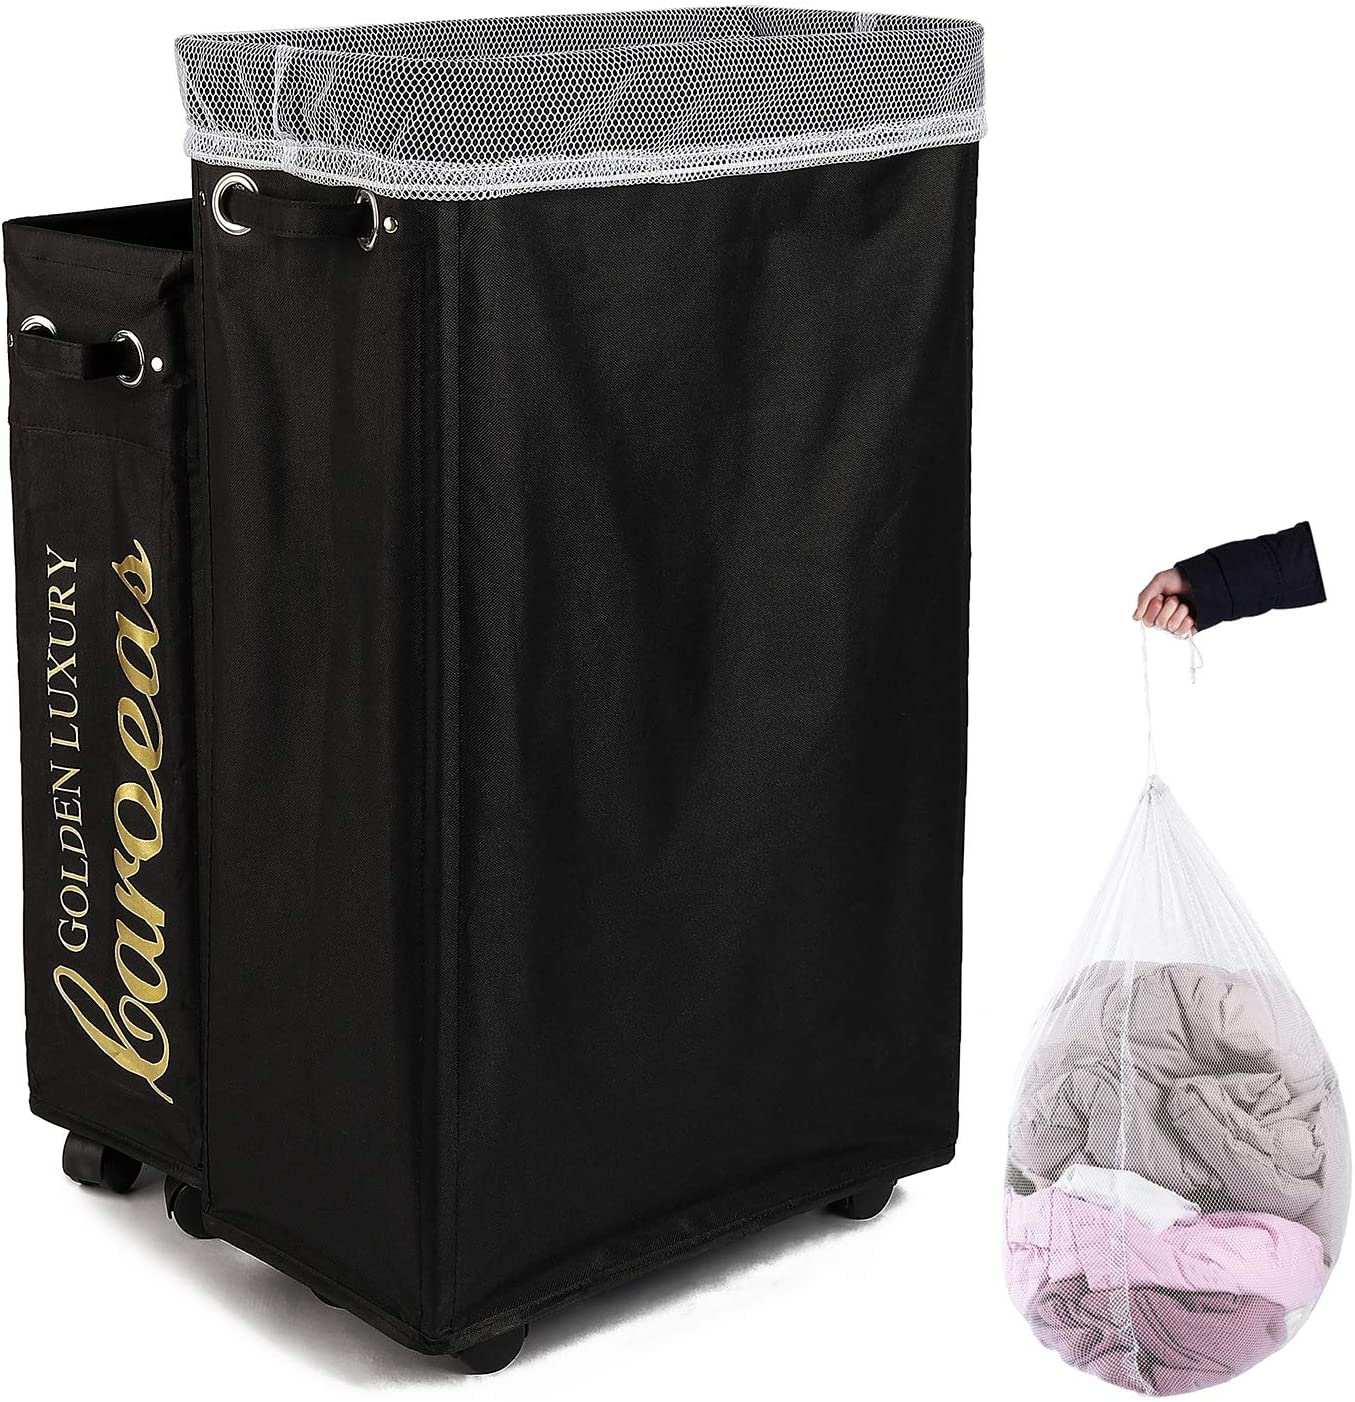 Caroeas Laundry Hamper, Rolling Laundry Basket Collapsible Tall Slim Laundry Hamper with Washable & Breathable Mesh Liner Waterproof & Dustproof Laundry Cart on Wheels (Black)